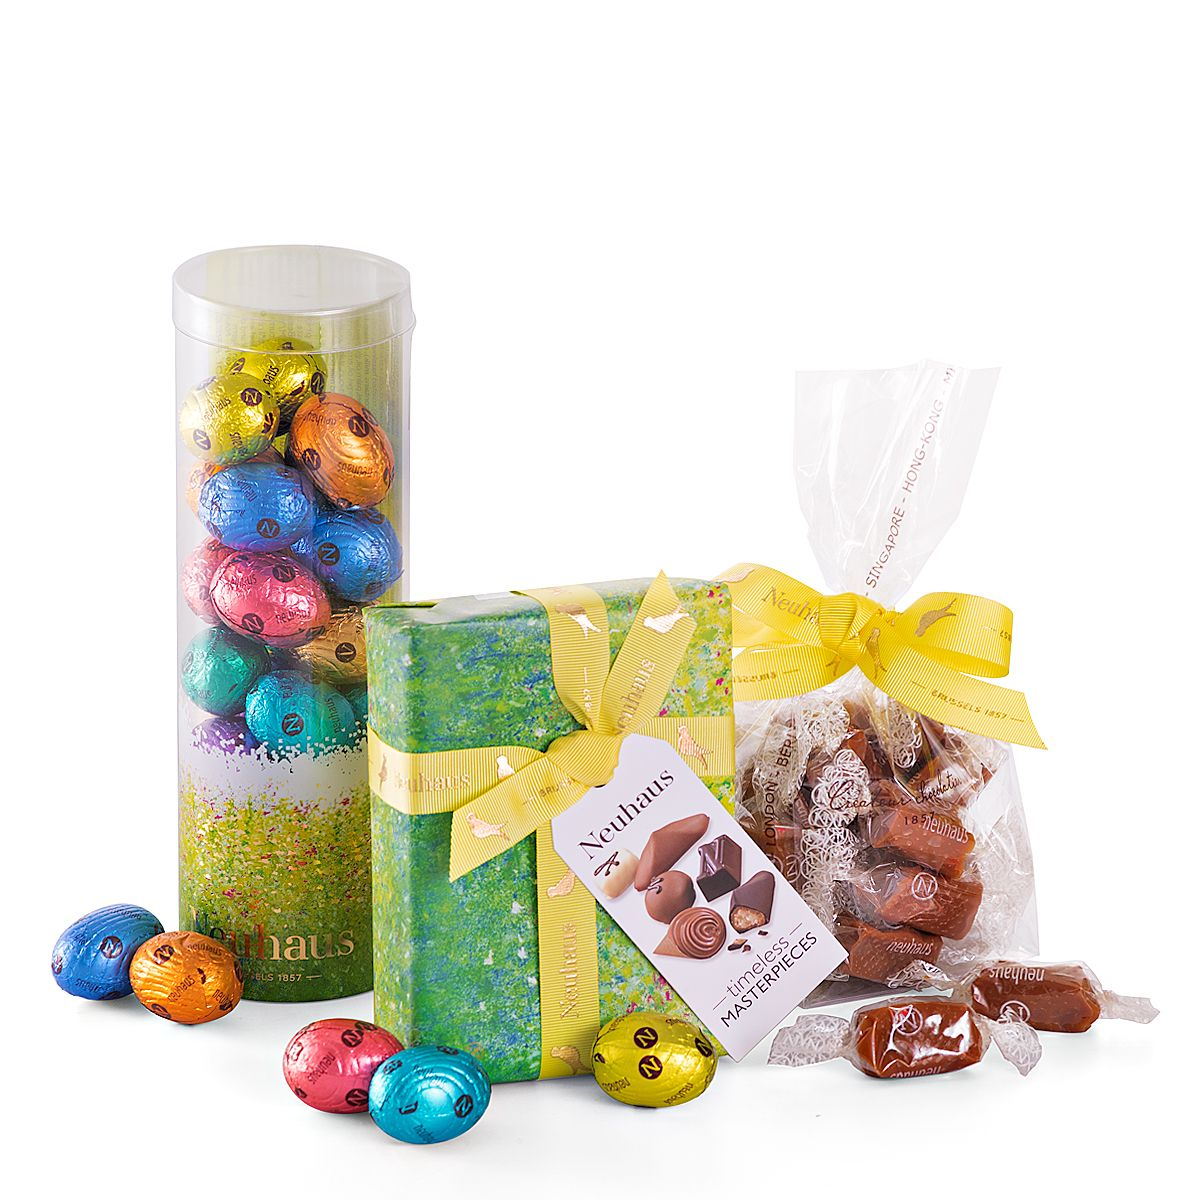 Make springtime more delicious with this wonderful trio of neuhaus buy neuhaus chocolate easter treats trio for delivery in belgium giftsforeurope is the leading gift provider in europe since negle Choice Image